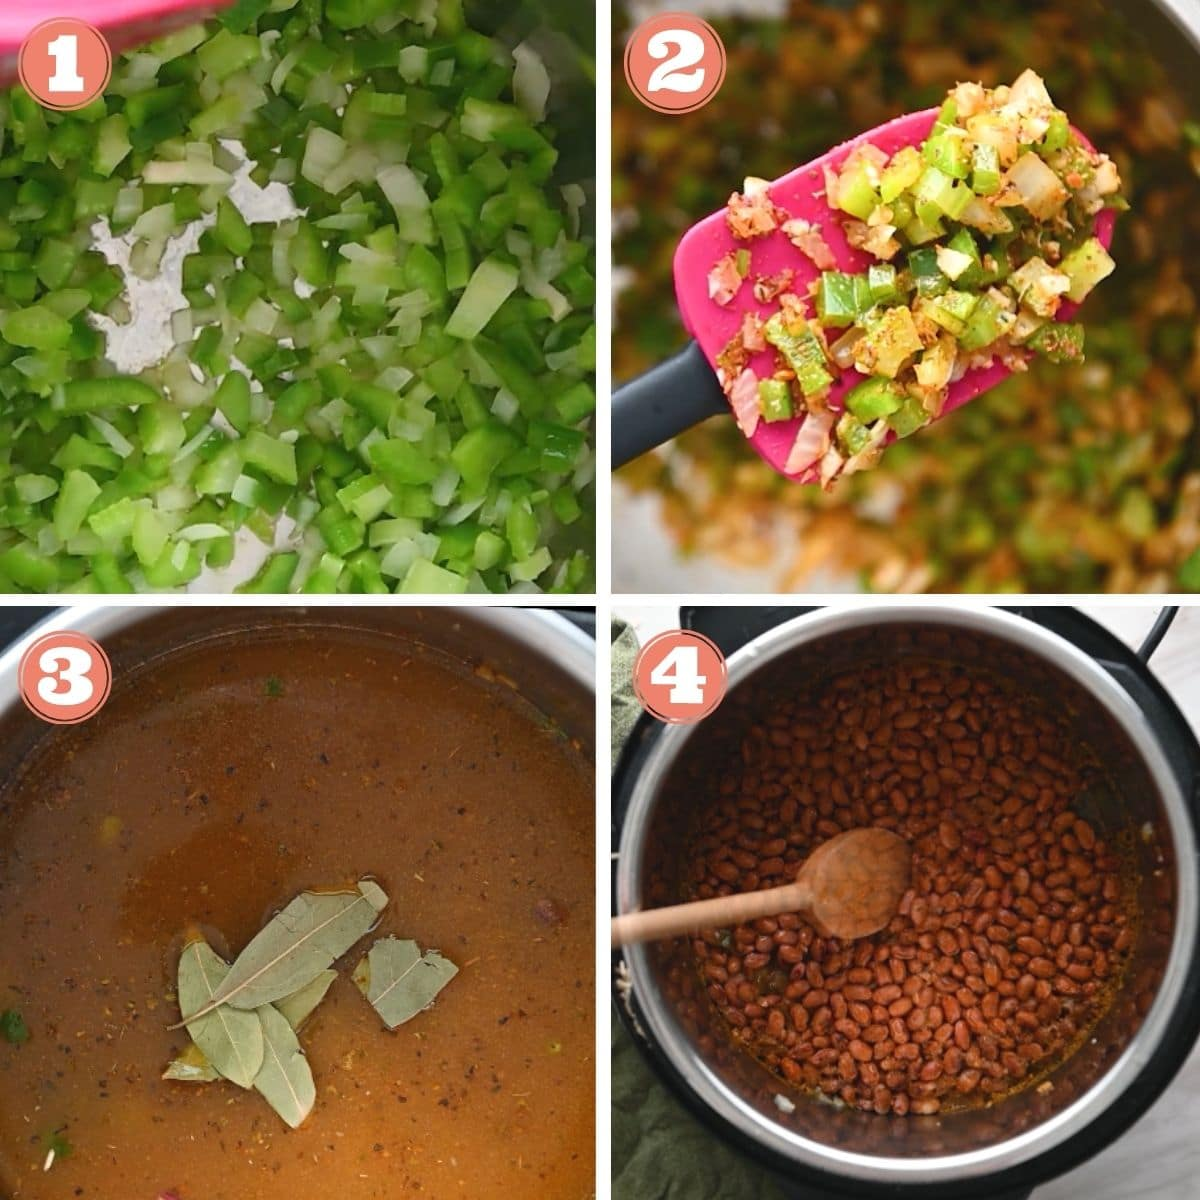 Steps 1 through 4 to make instant pot rice and beans